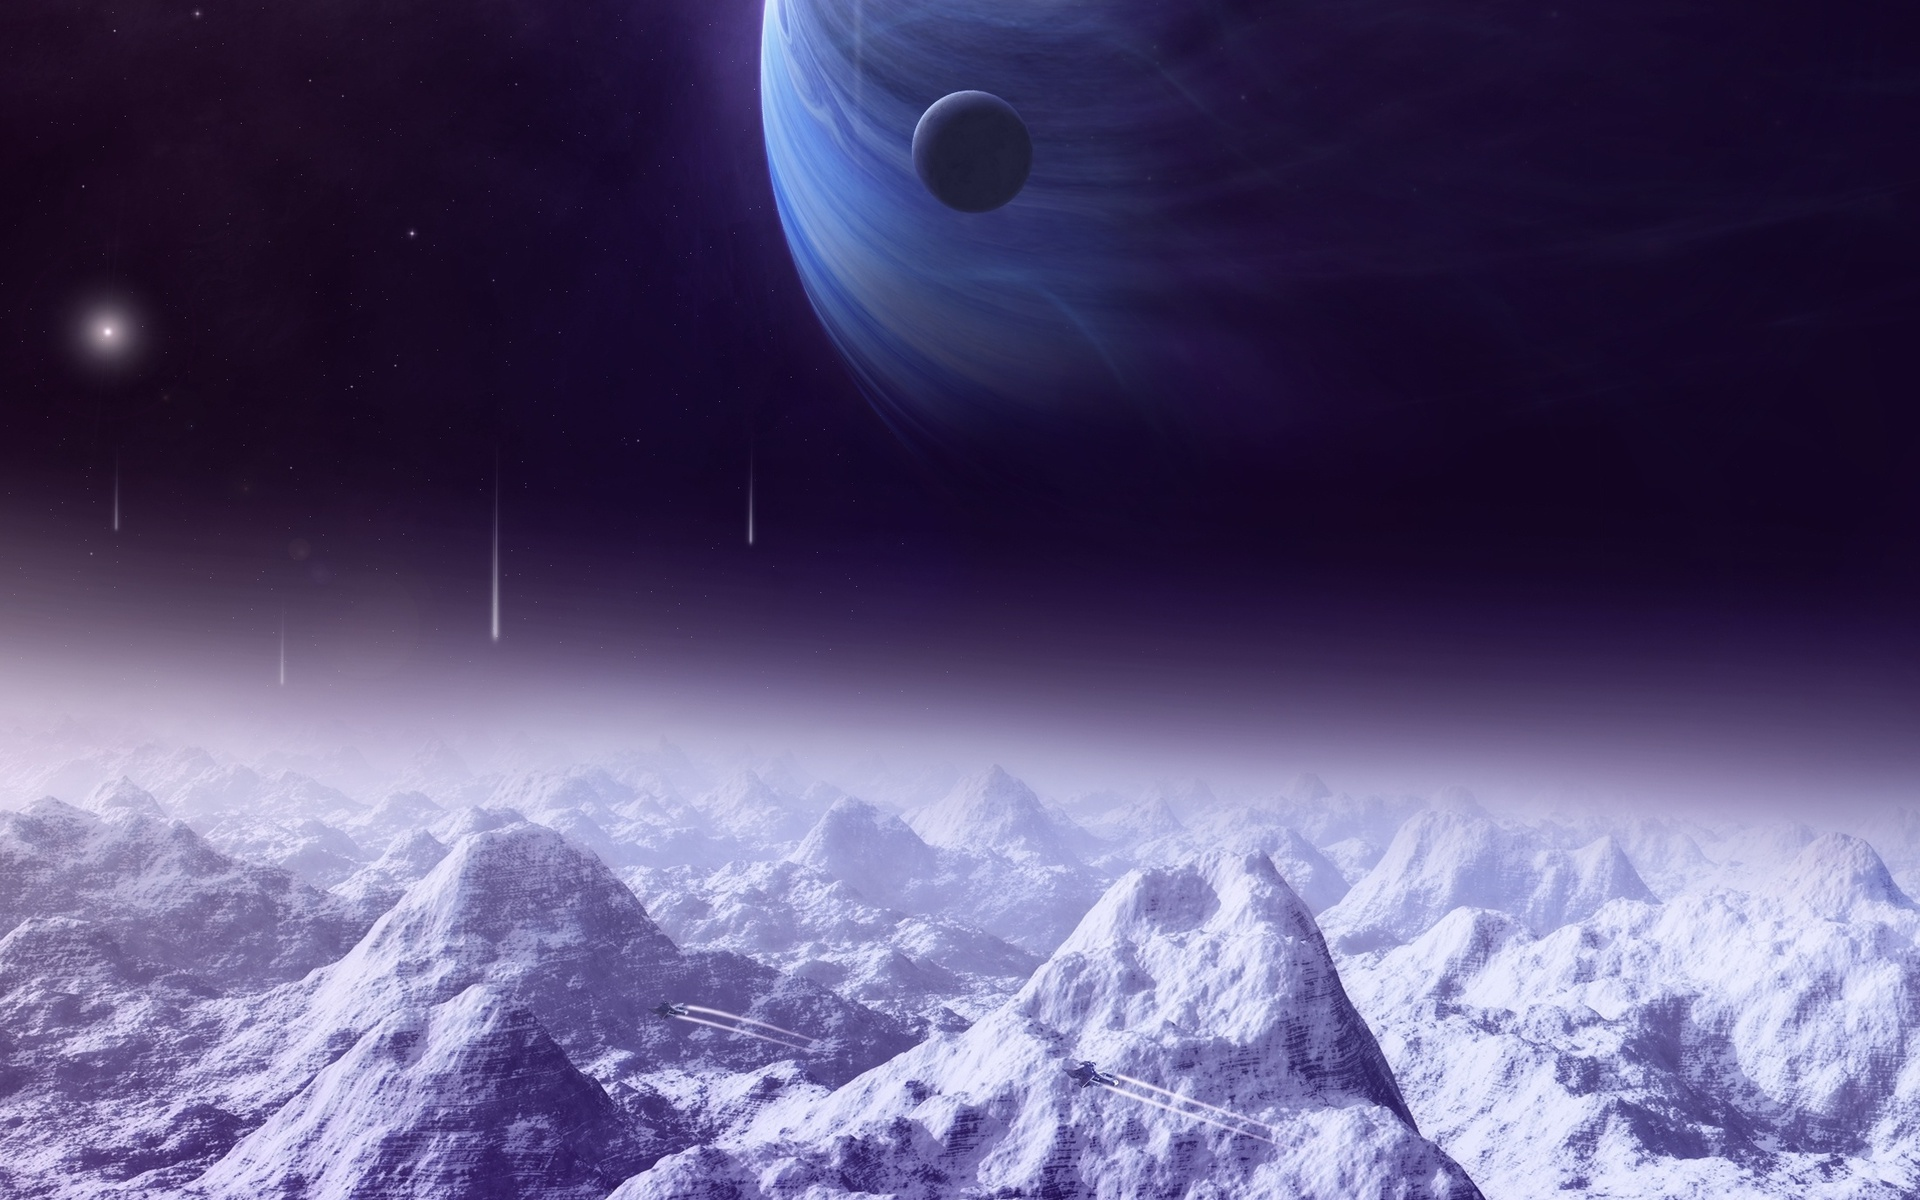 space ships, Sci fi, satellite, mountains, planets, lights, moon